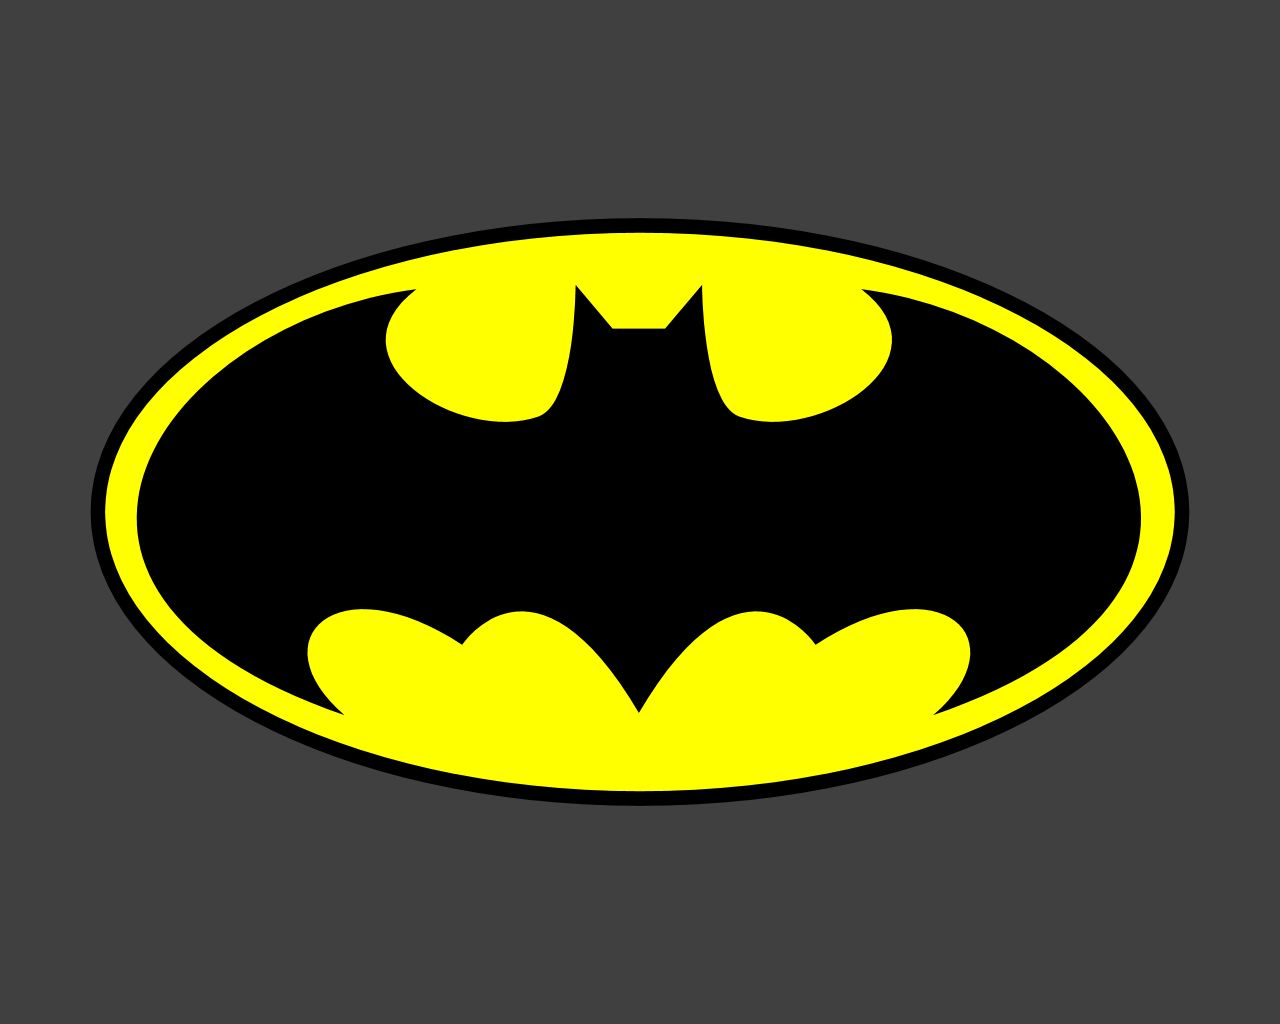 Batman symbol zoom comics daily comic book wallpapers voltagebd Choice Image